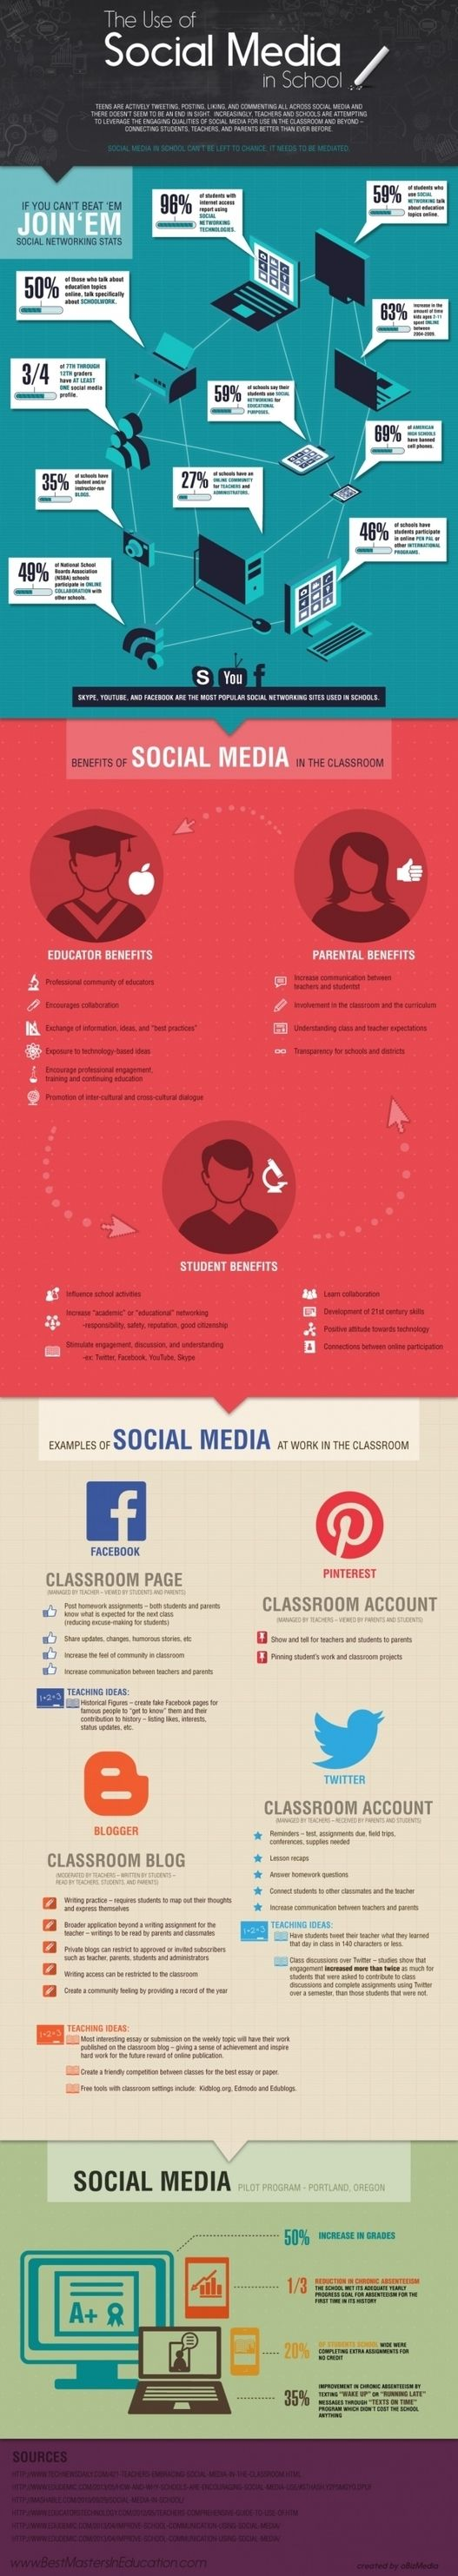 Infographic: The Use of Social Media in School